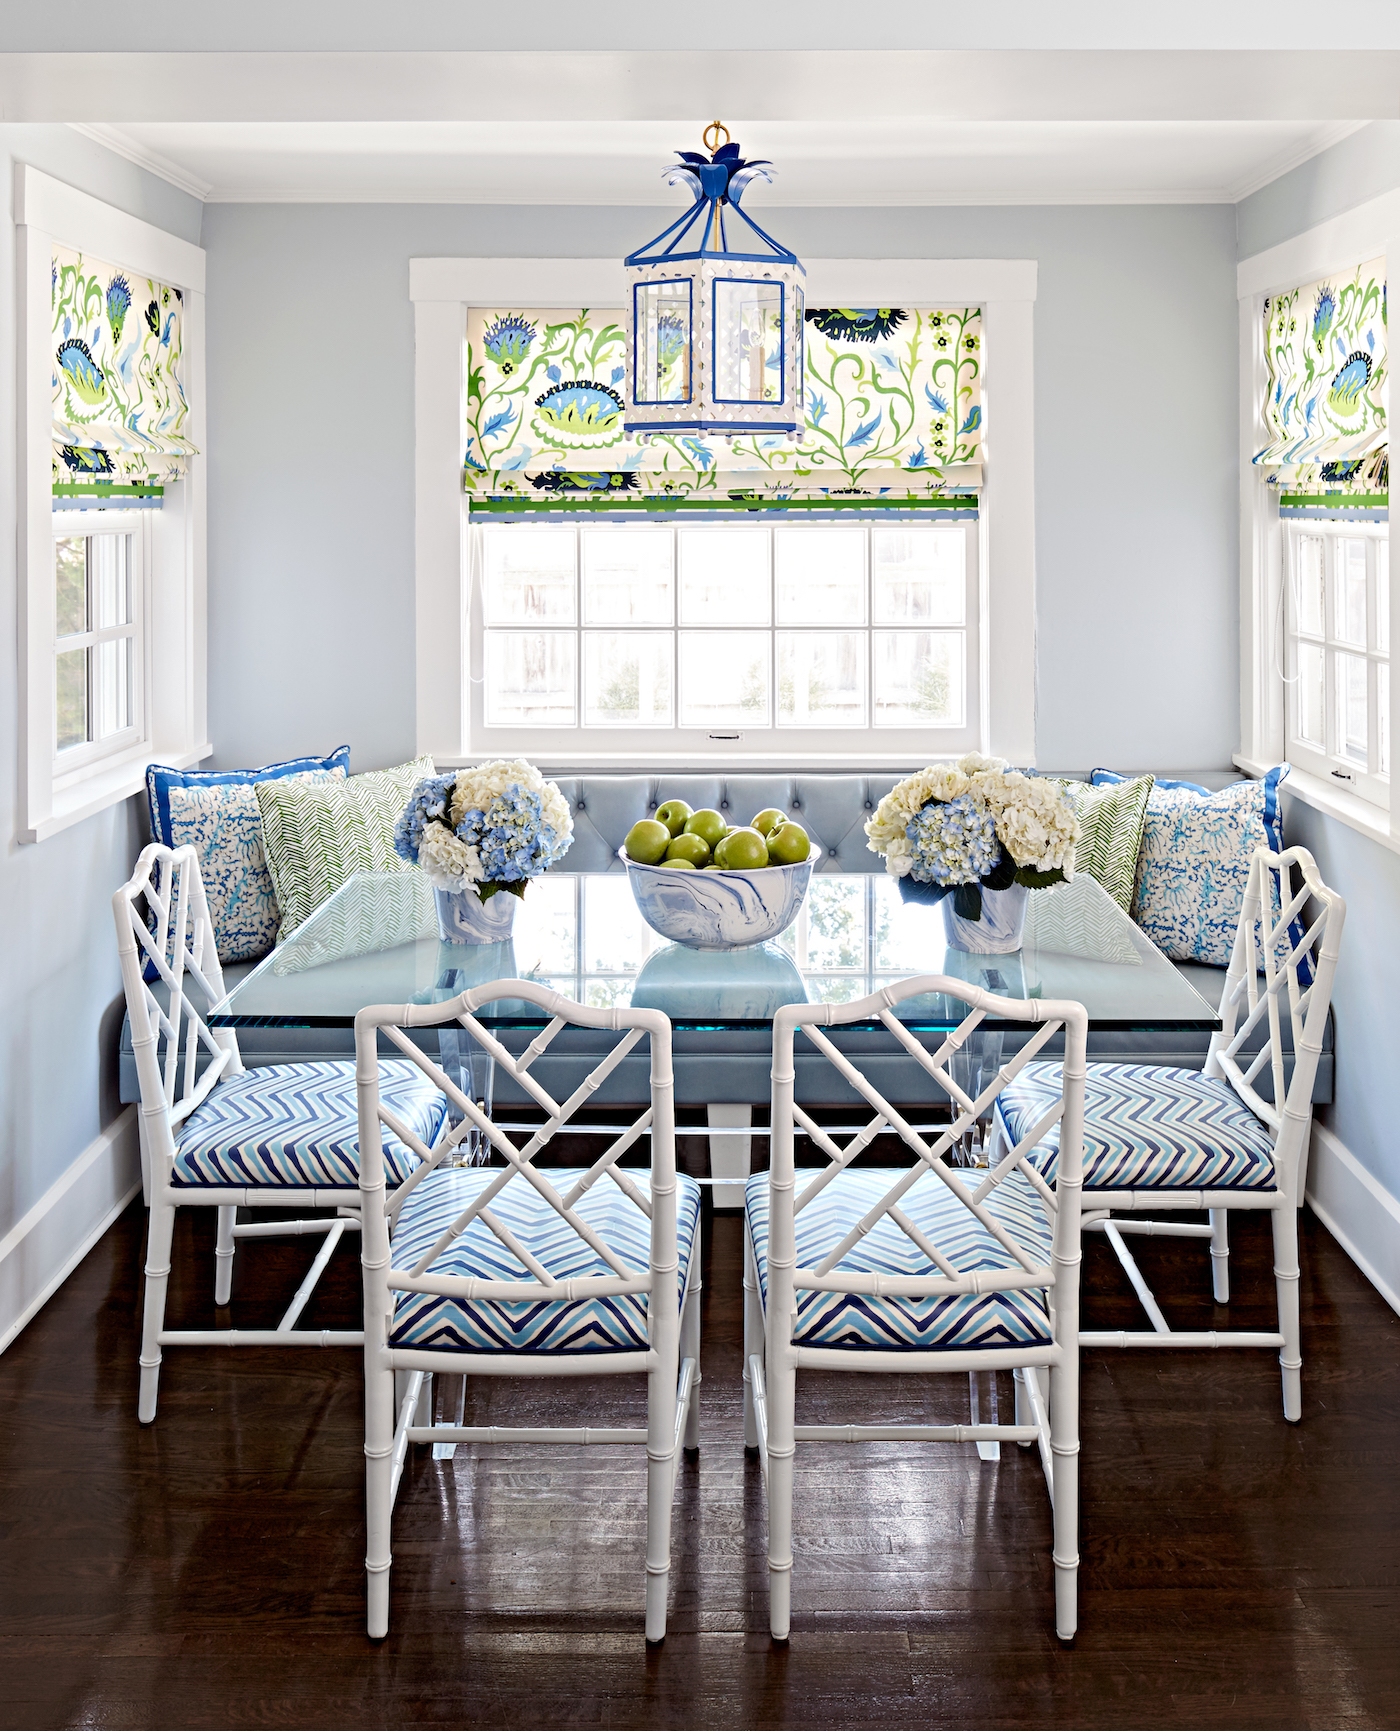 Breakfast room by Amanda Reynal Interiors